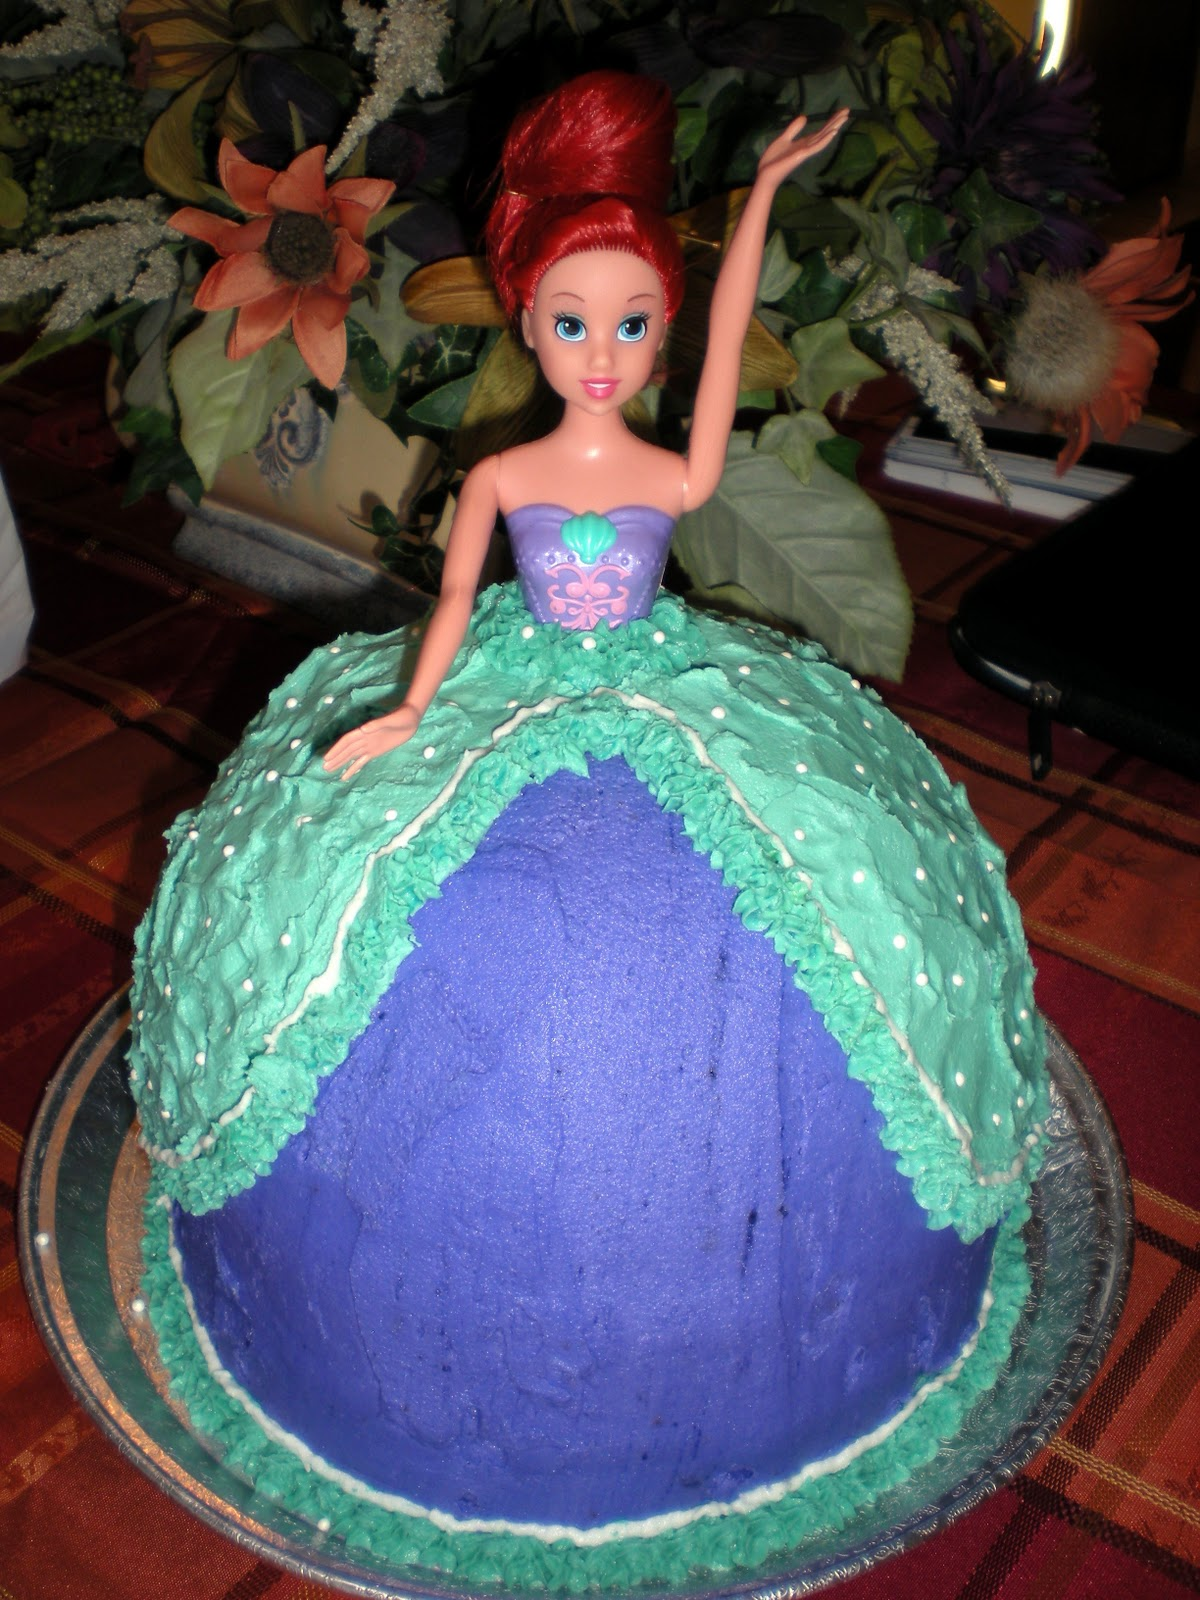 Hinckley Health and Happiness Barbie Cake